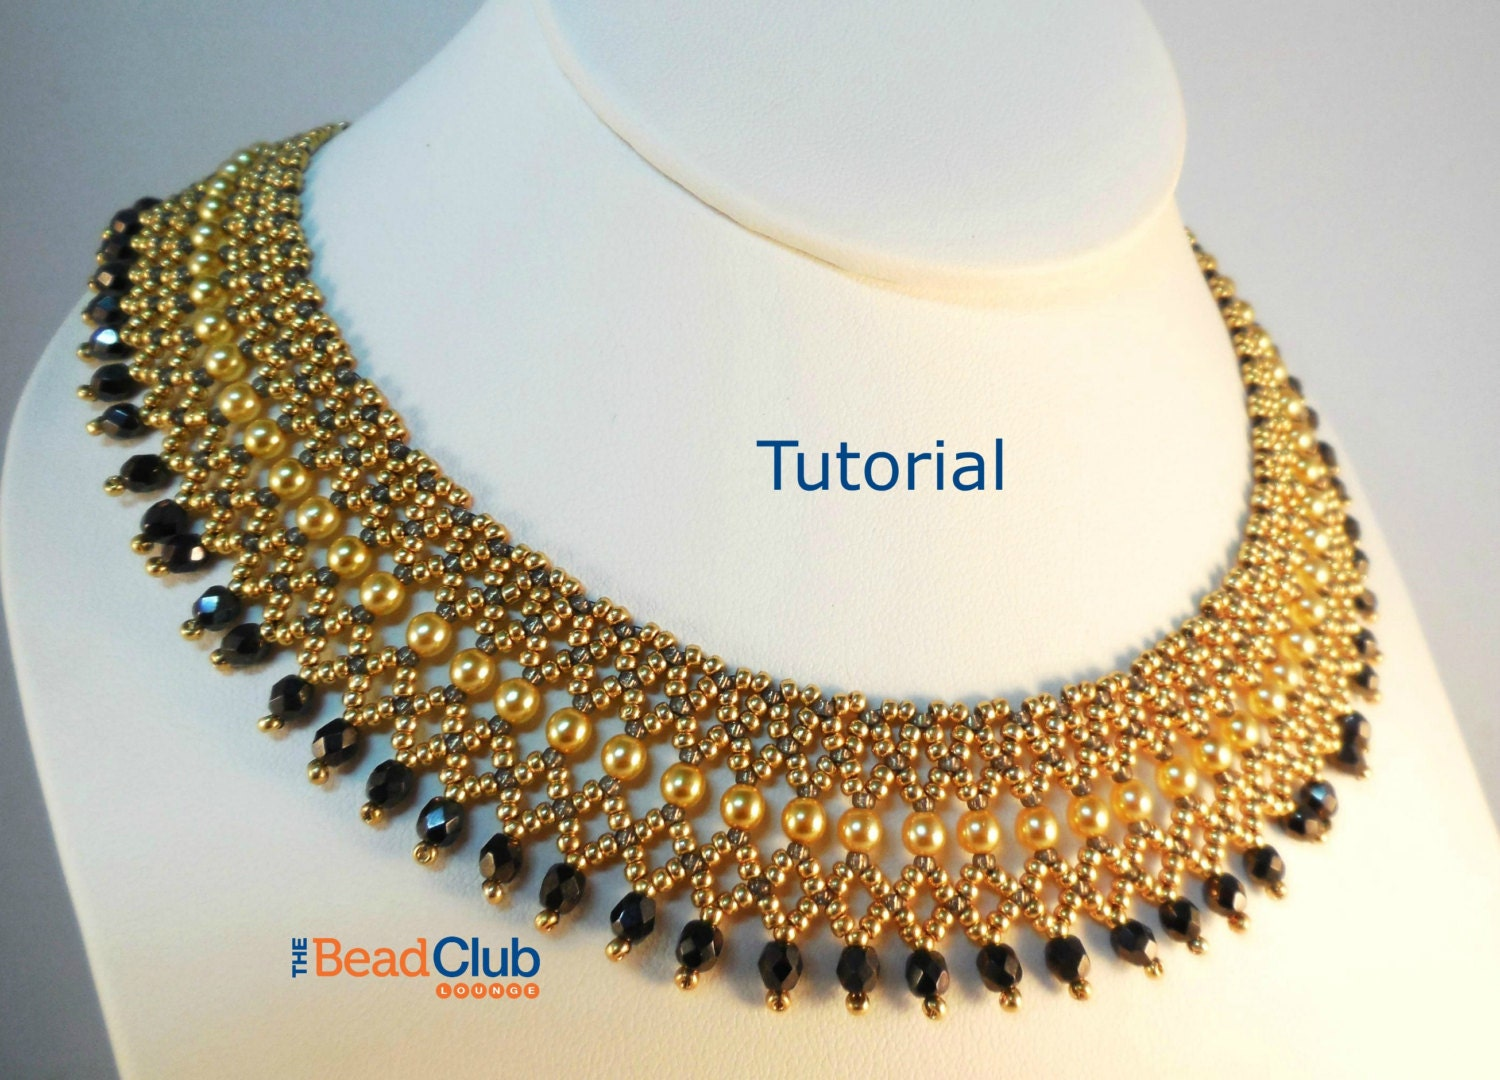 Necklace Patterns Seed Bead Tutorials Bead Netting